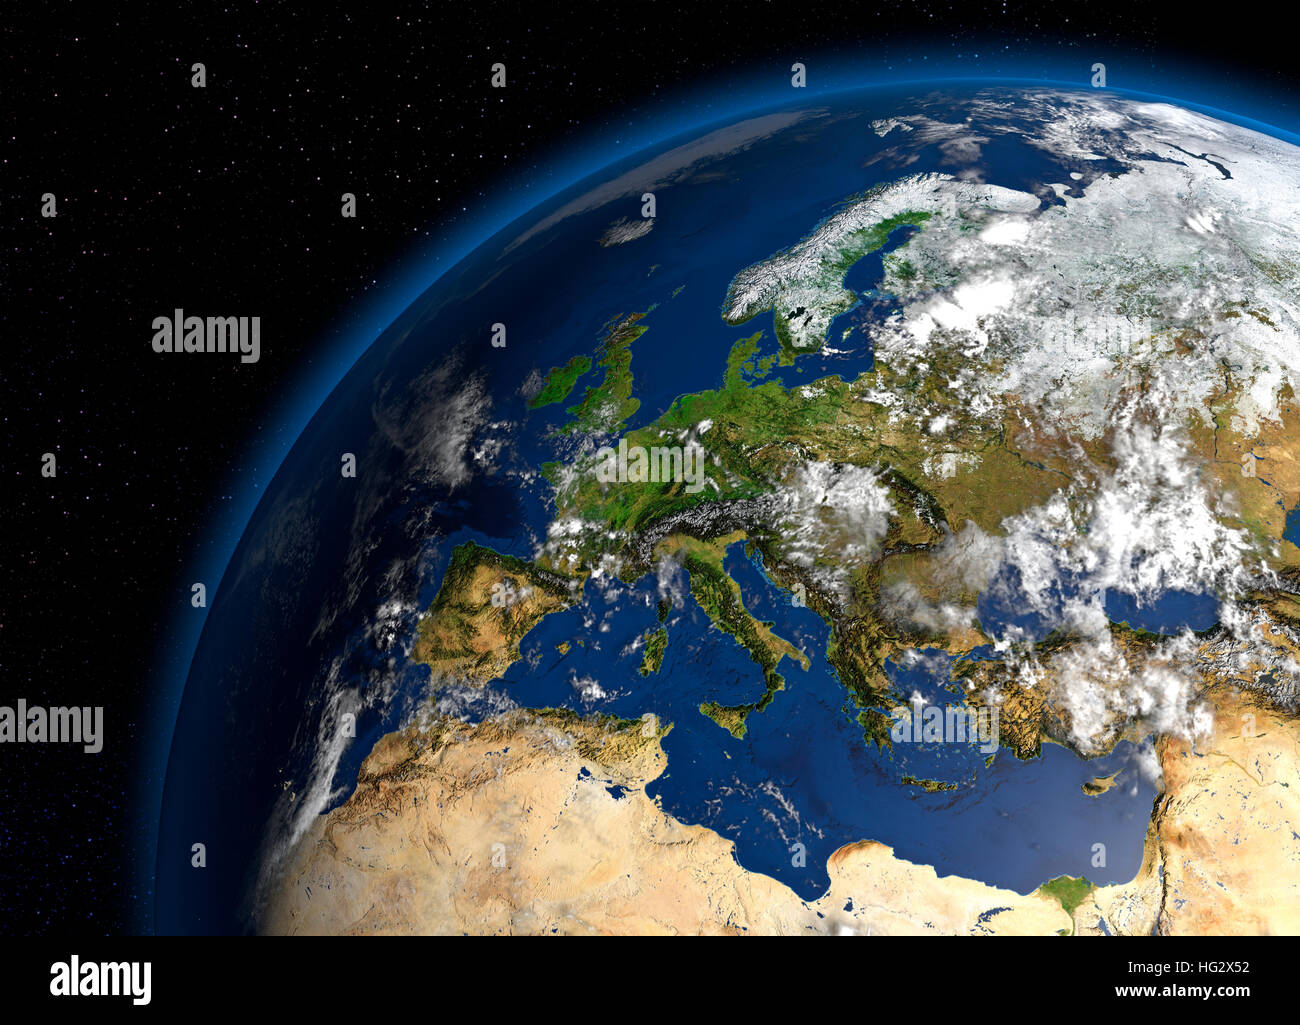 Earth Viewed From Space Showing Europe. Realistic Digital Stock Photo: 130371502